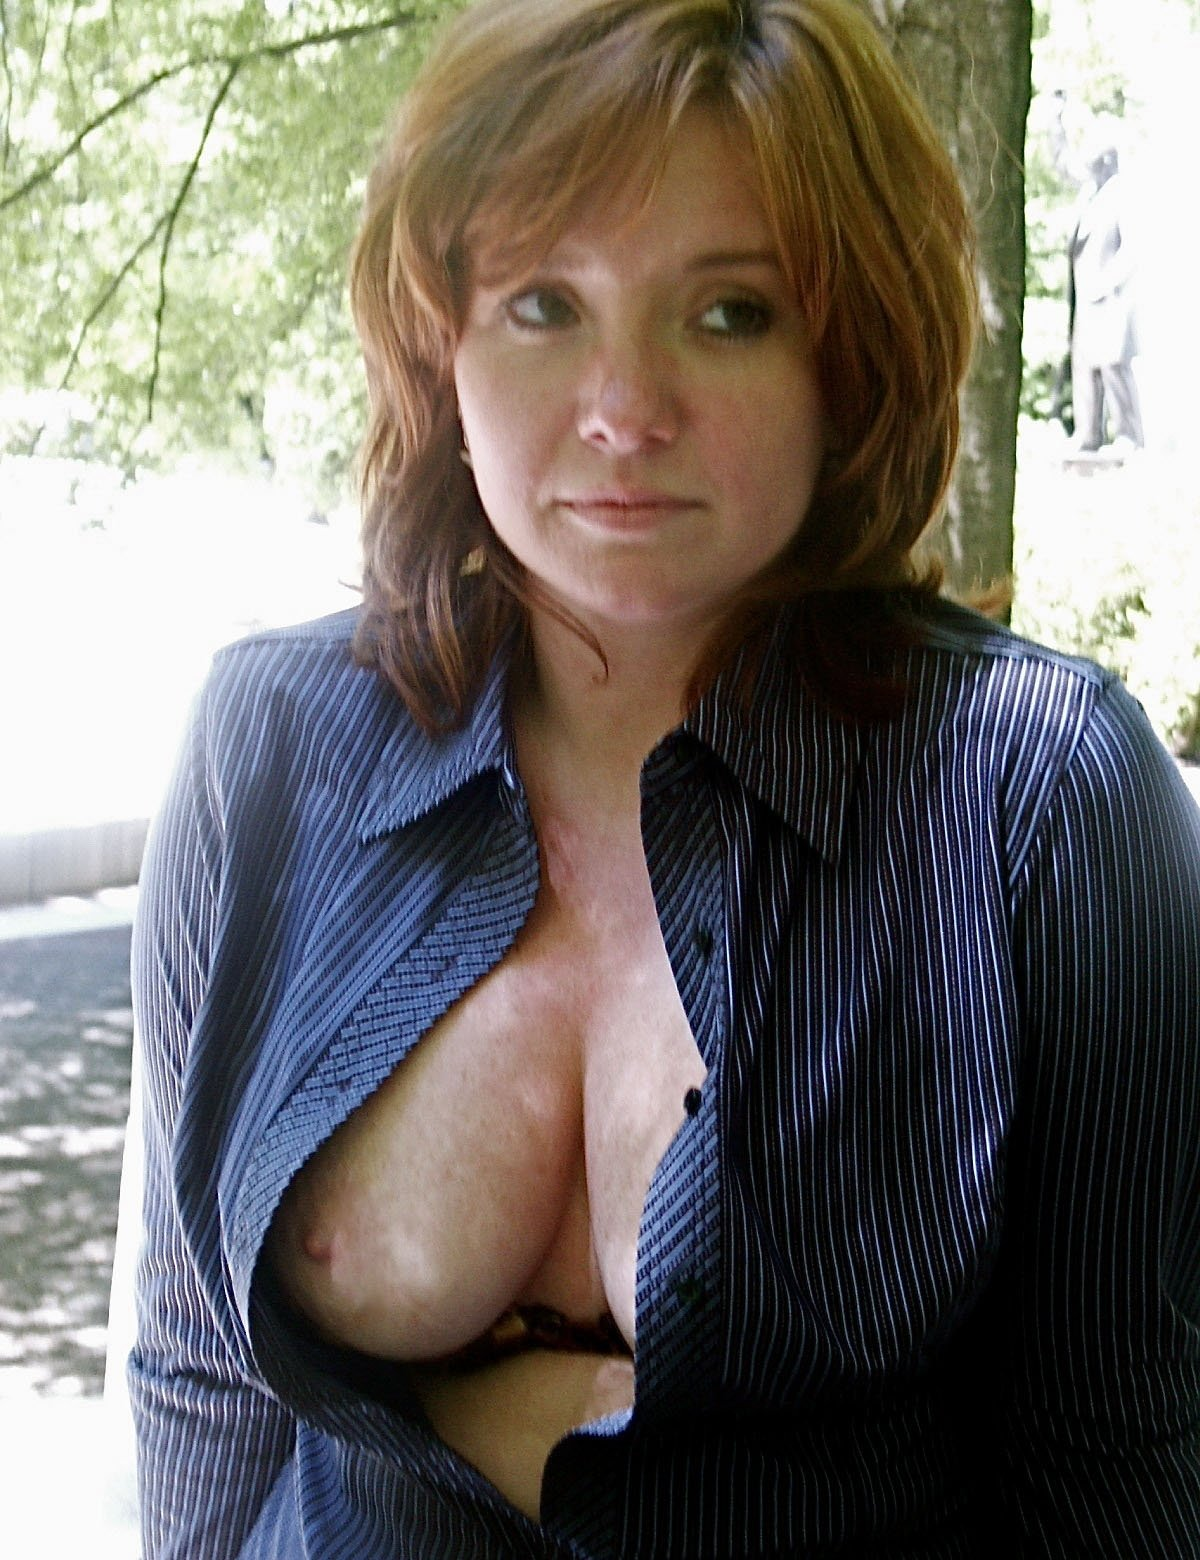 huge mature tits